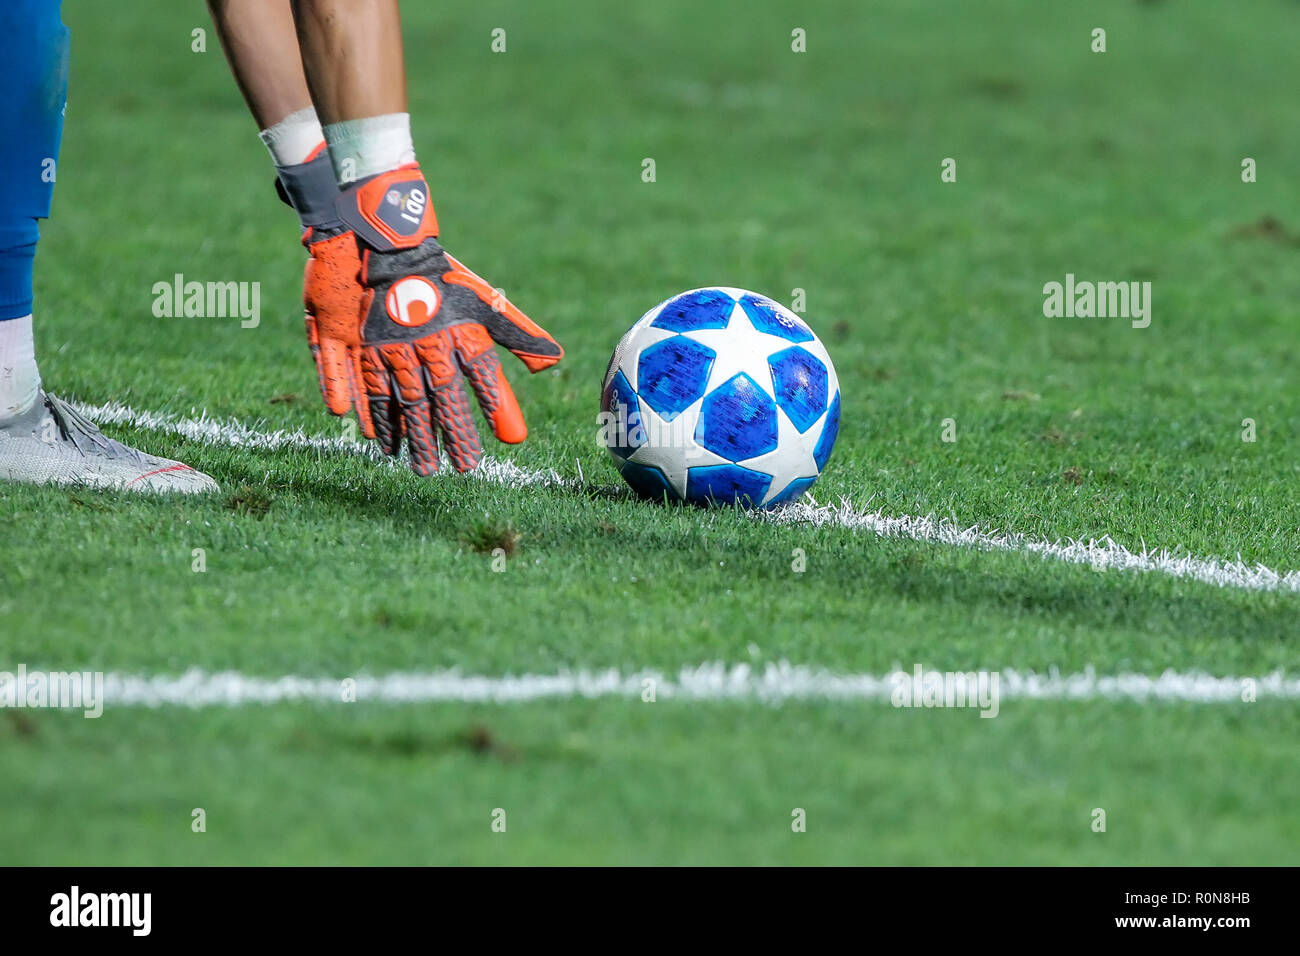 Thessaloniki, Greece - August 29, 2018: Close-up of goalkeeper's hands holding a official ball during the UEFA Champions League Play-offs , 2nd leg PA - Stock Image